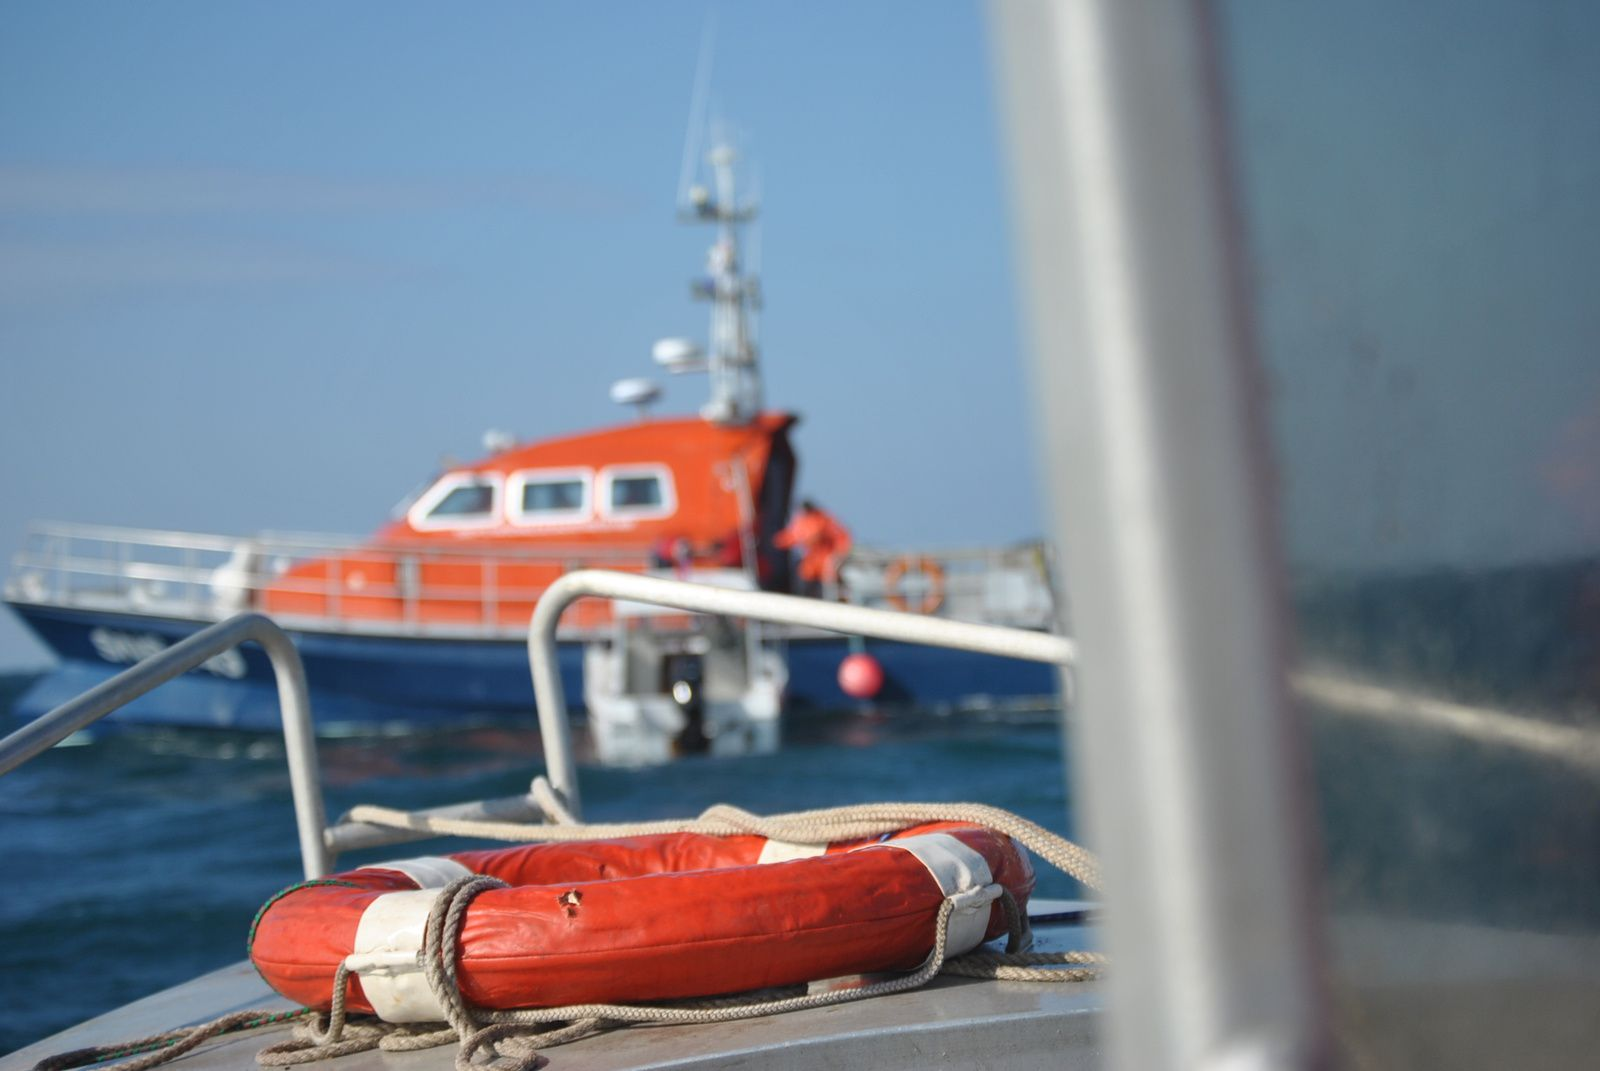 EXERCICE ORSEC 2 - FEU A BORD D'UN BATEAU DE PLAISANCE AUX ECREVIERES